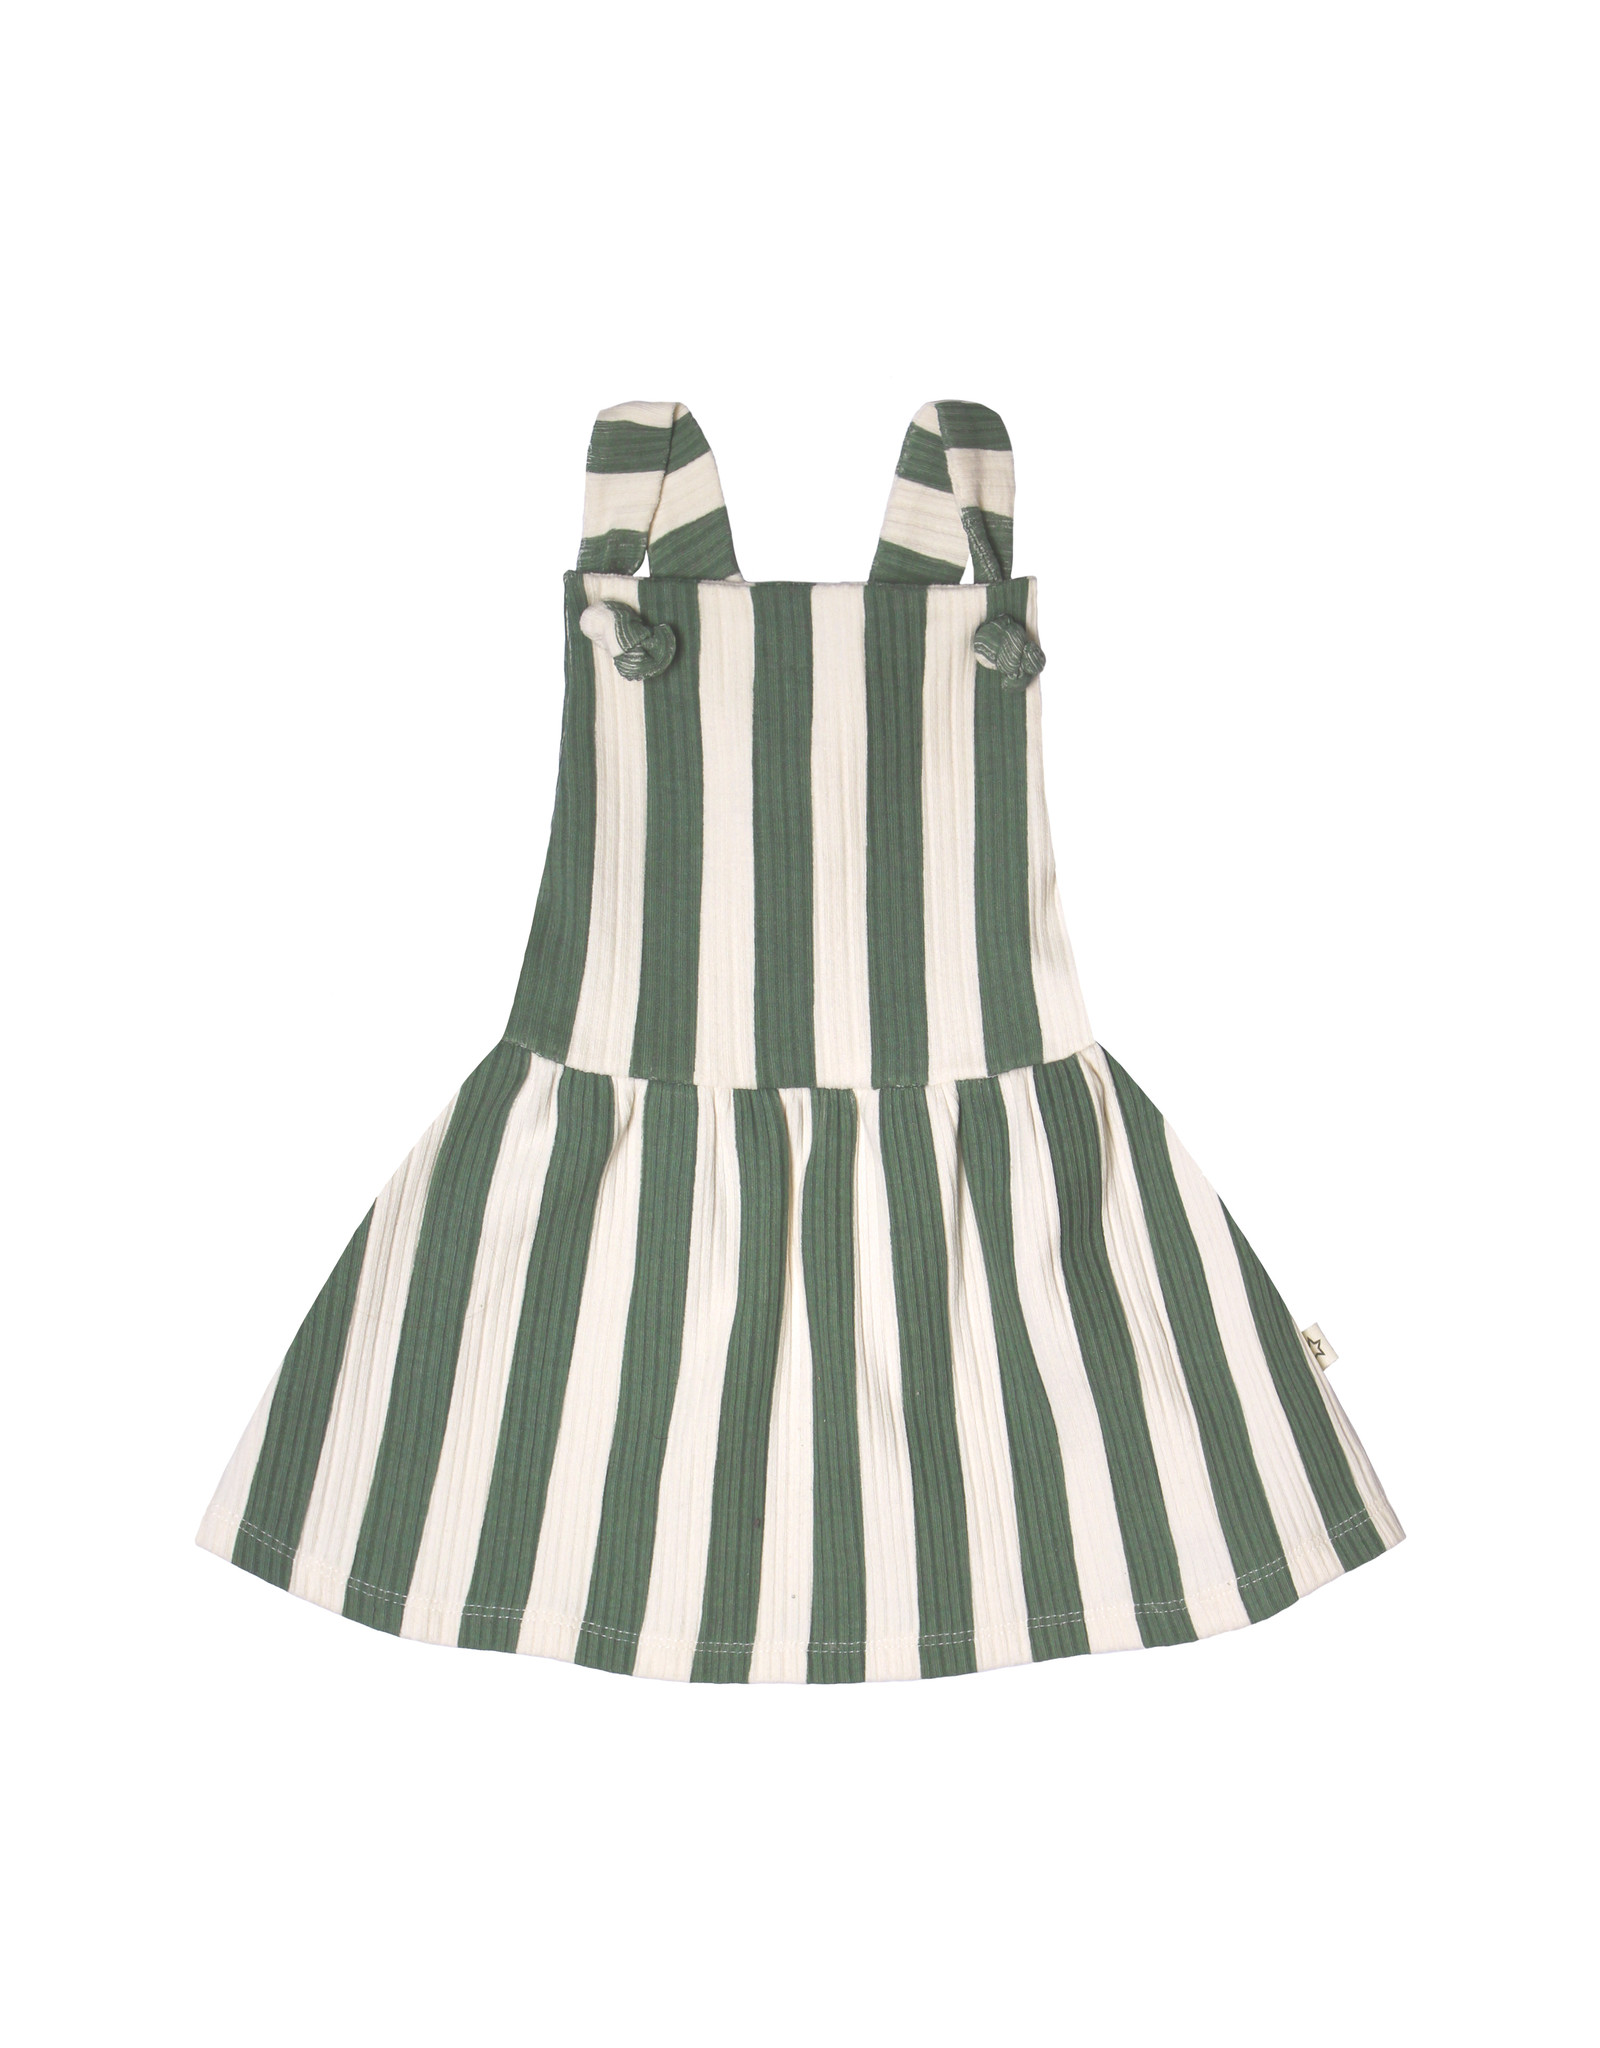 Your Wishes Bold Stripes | Dungaree Dress